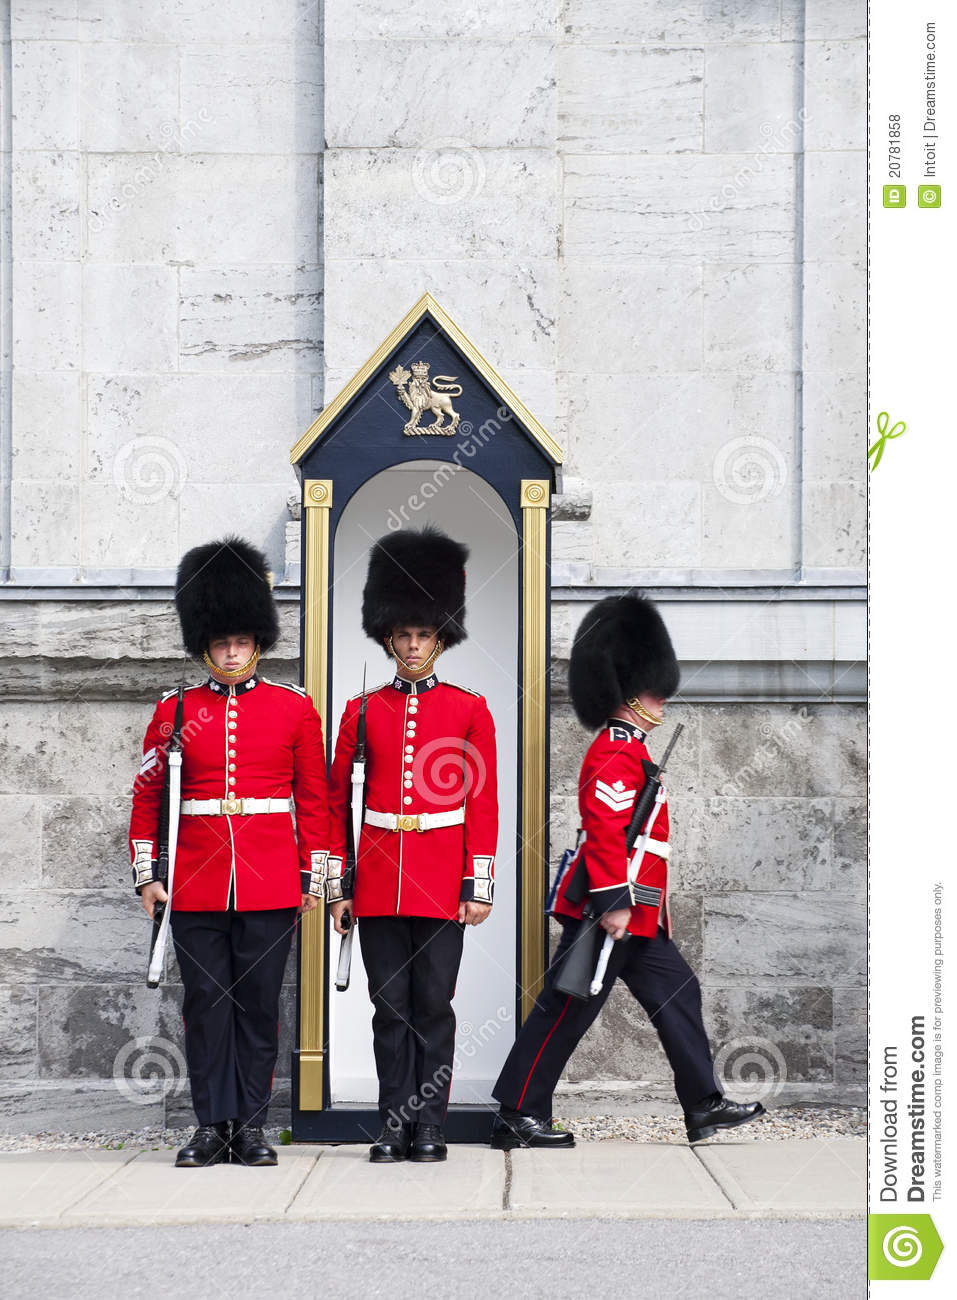 The governor general s foot guards - Canada Changing Foot General Governor Guard